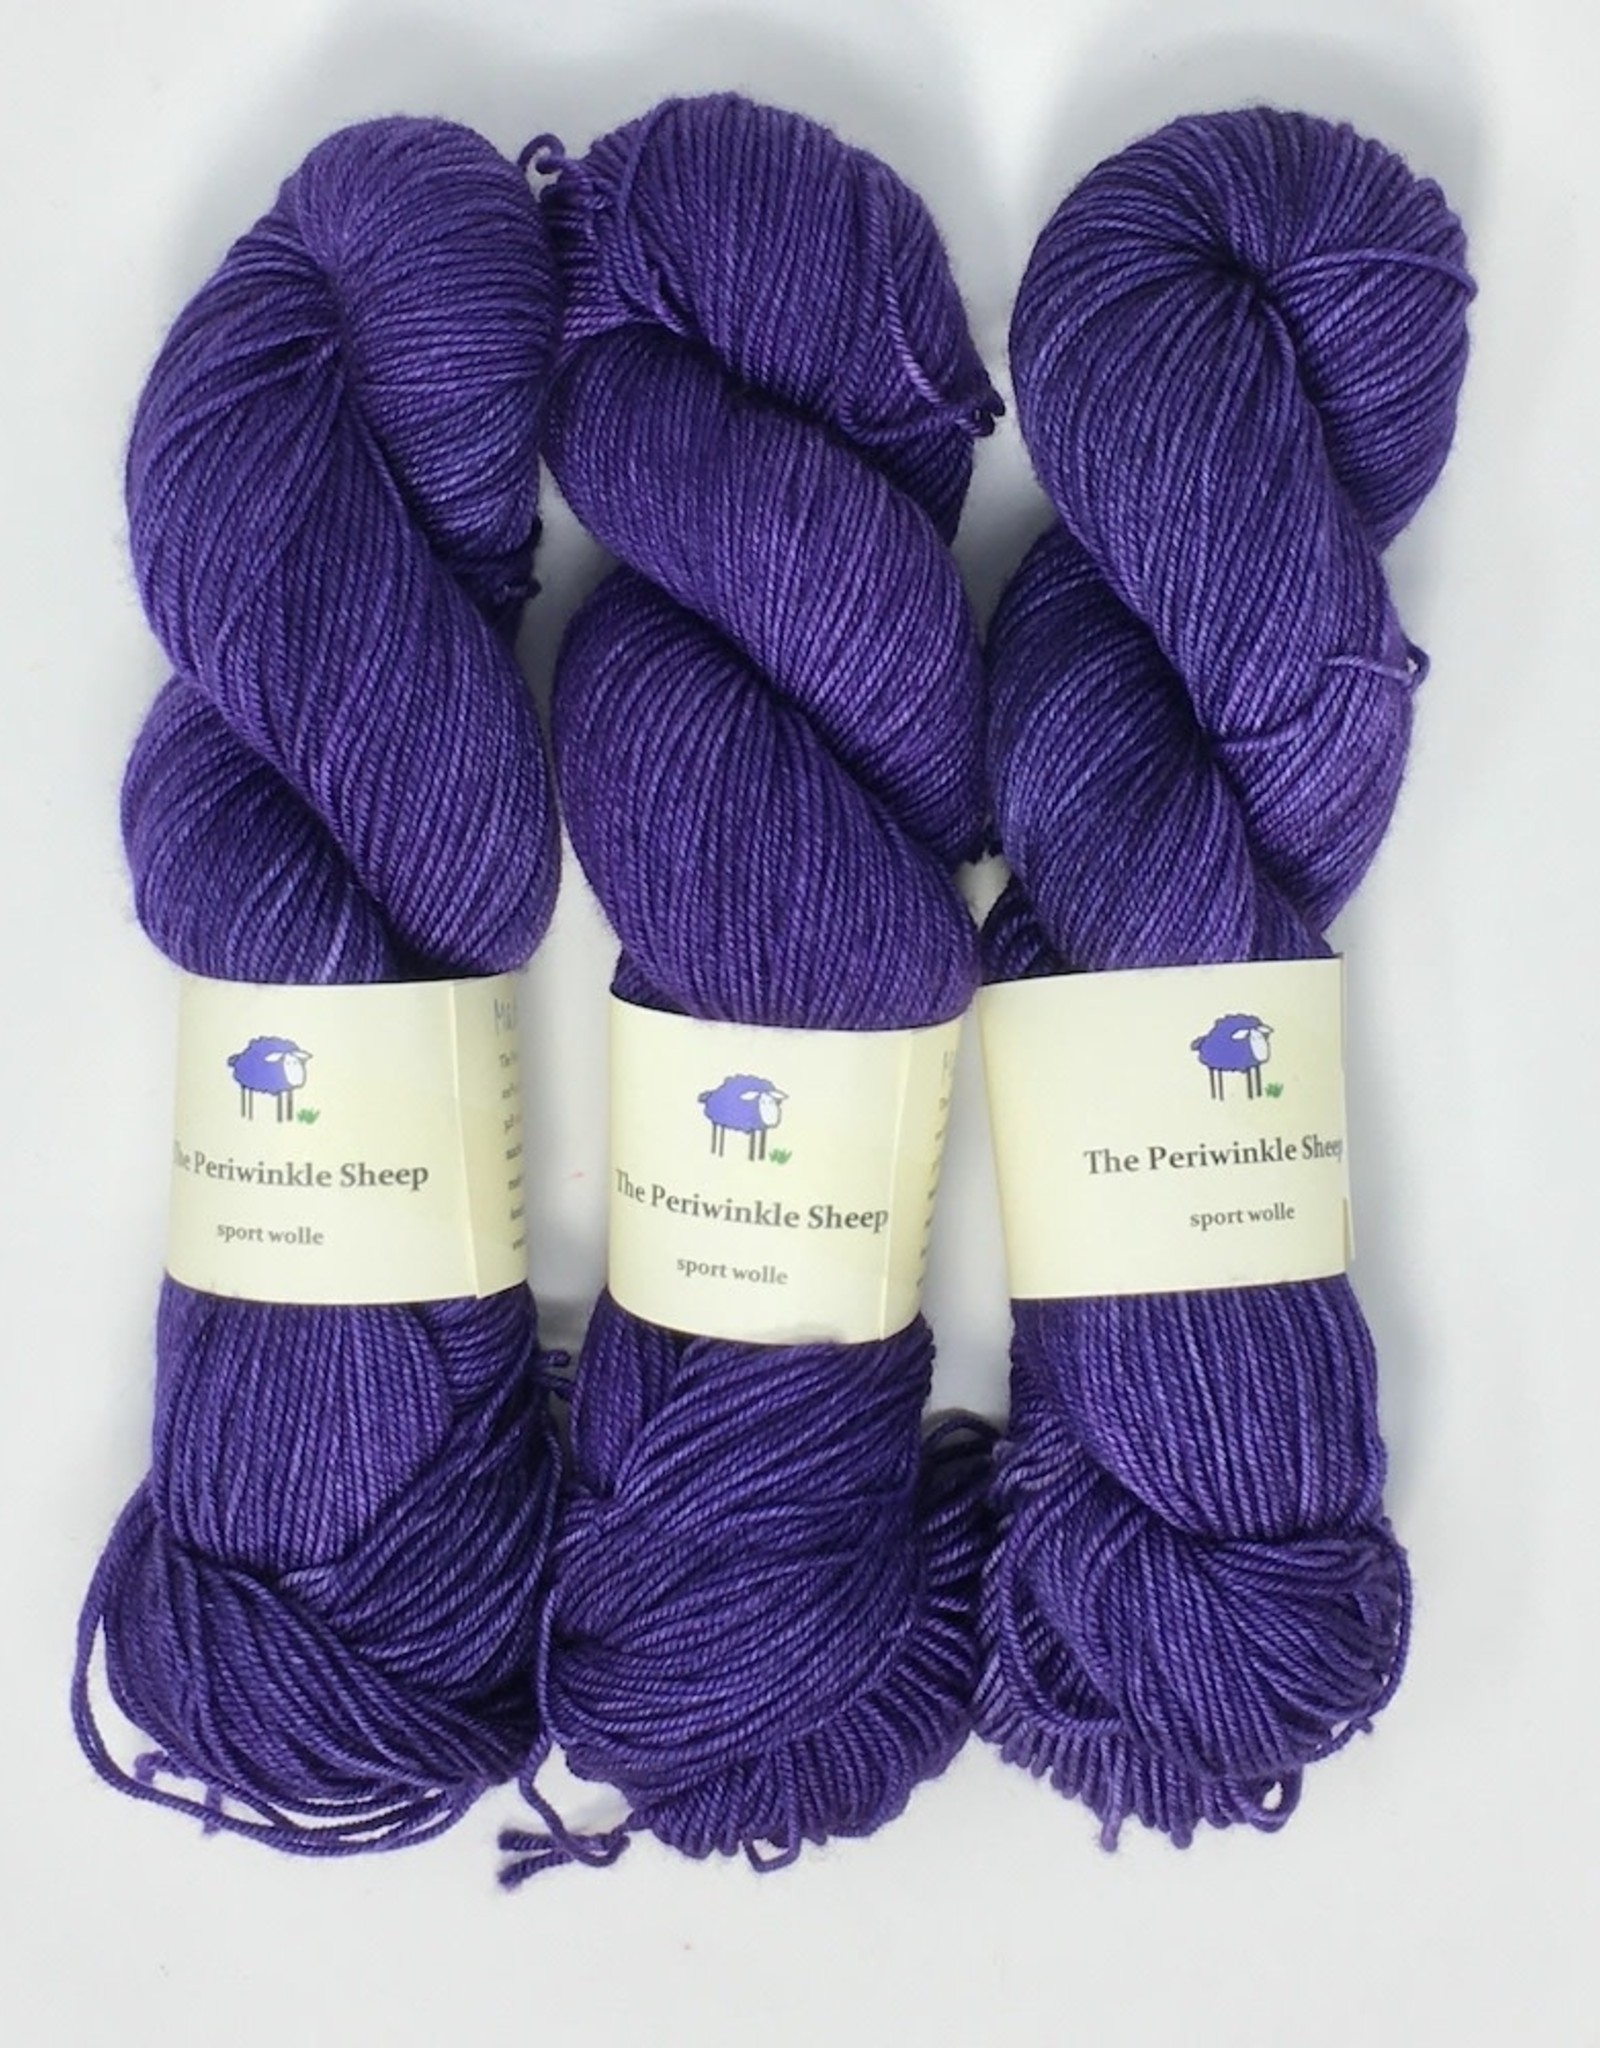 The Periwinkle Sheep The Periwinkle Sheep Sport Wolle